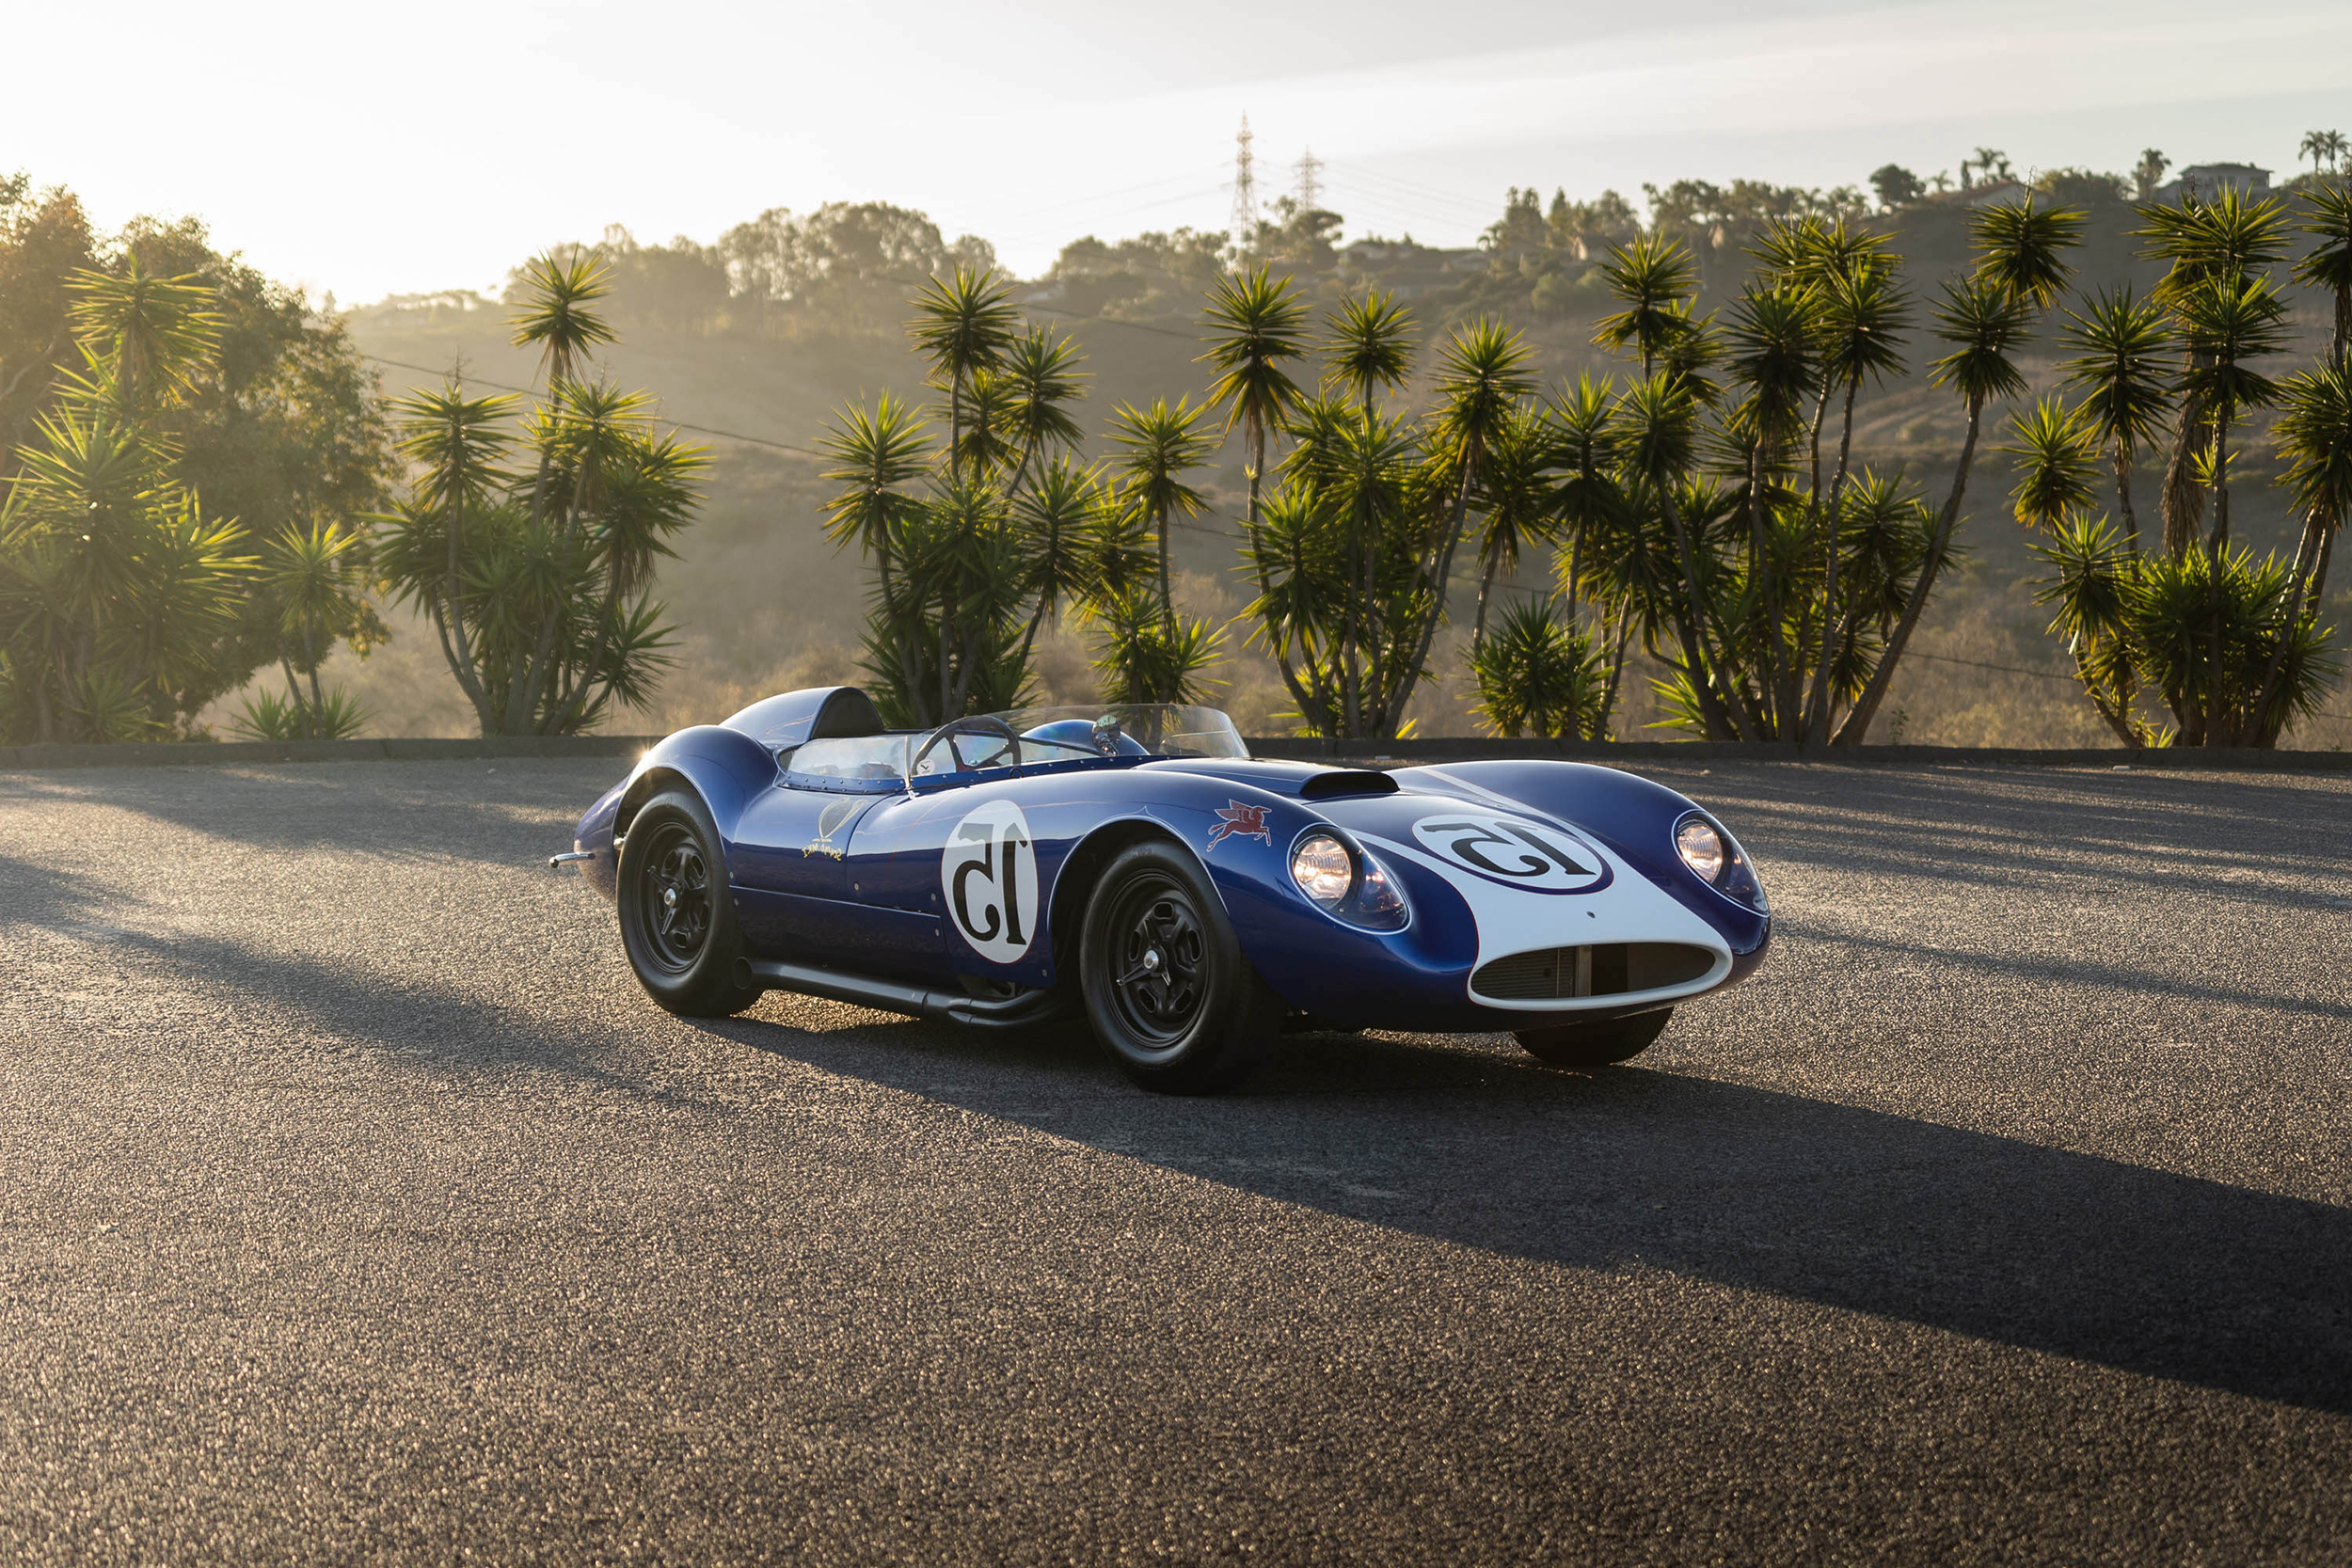 210219 1958 Scarab Reproduction (Credit - Karissa Hosek ©2021 Courtesy of RM Sotheby's)